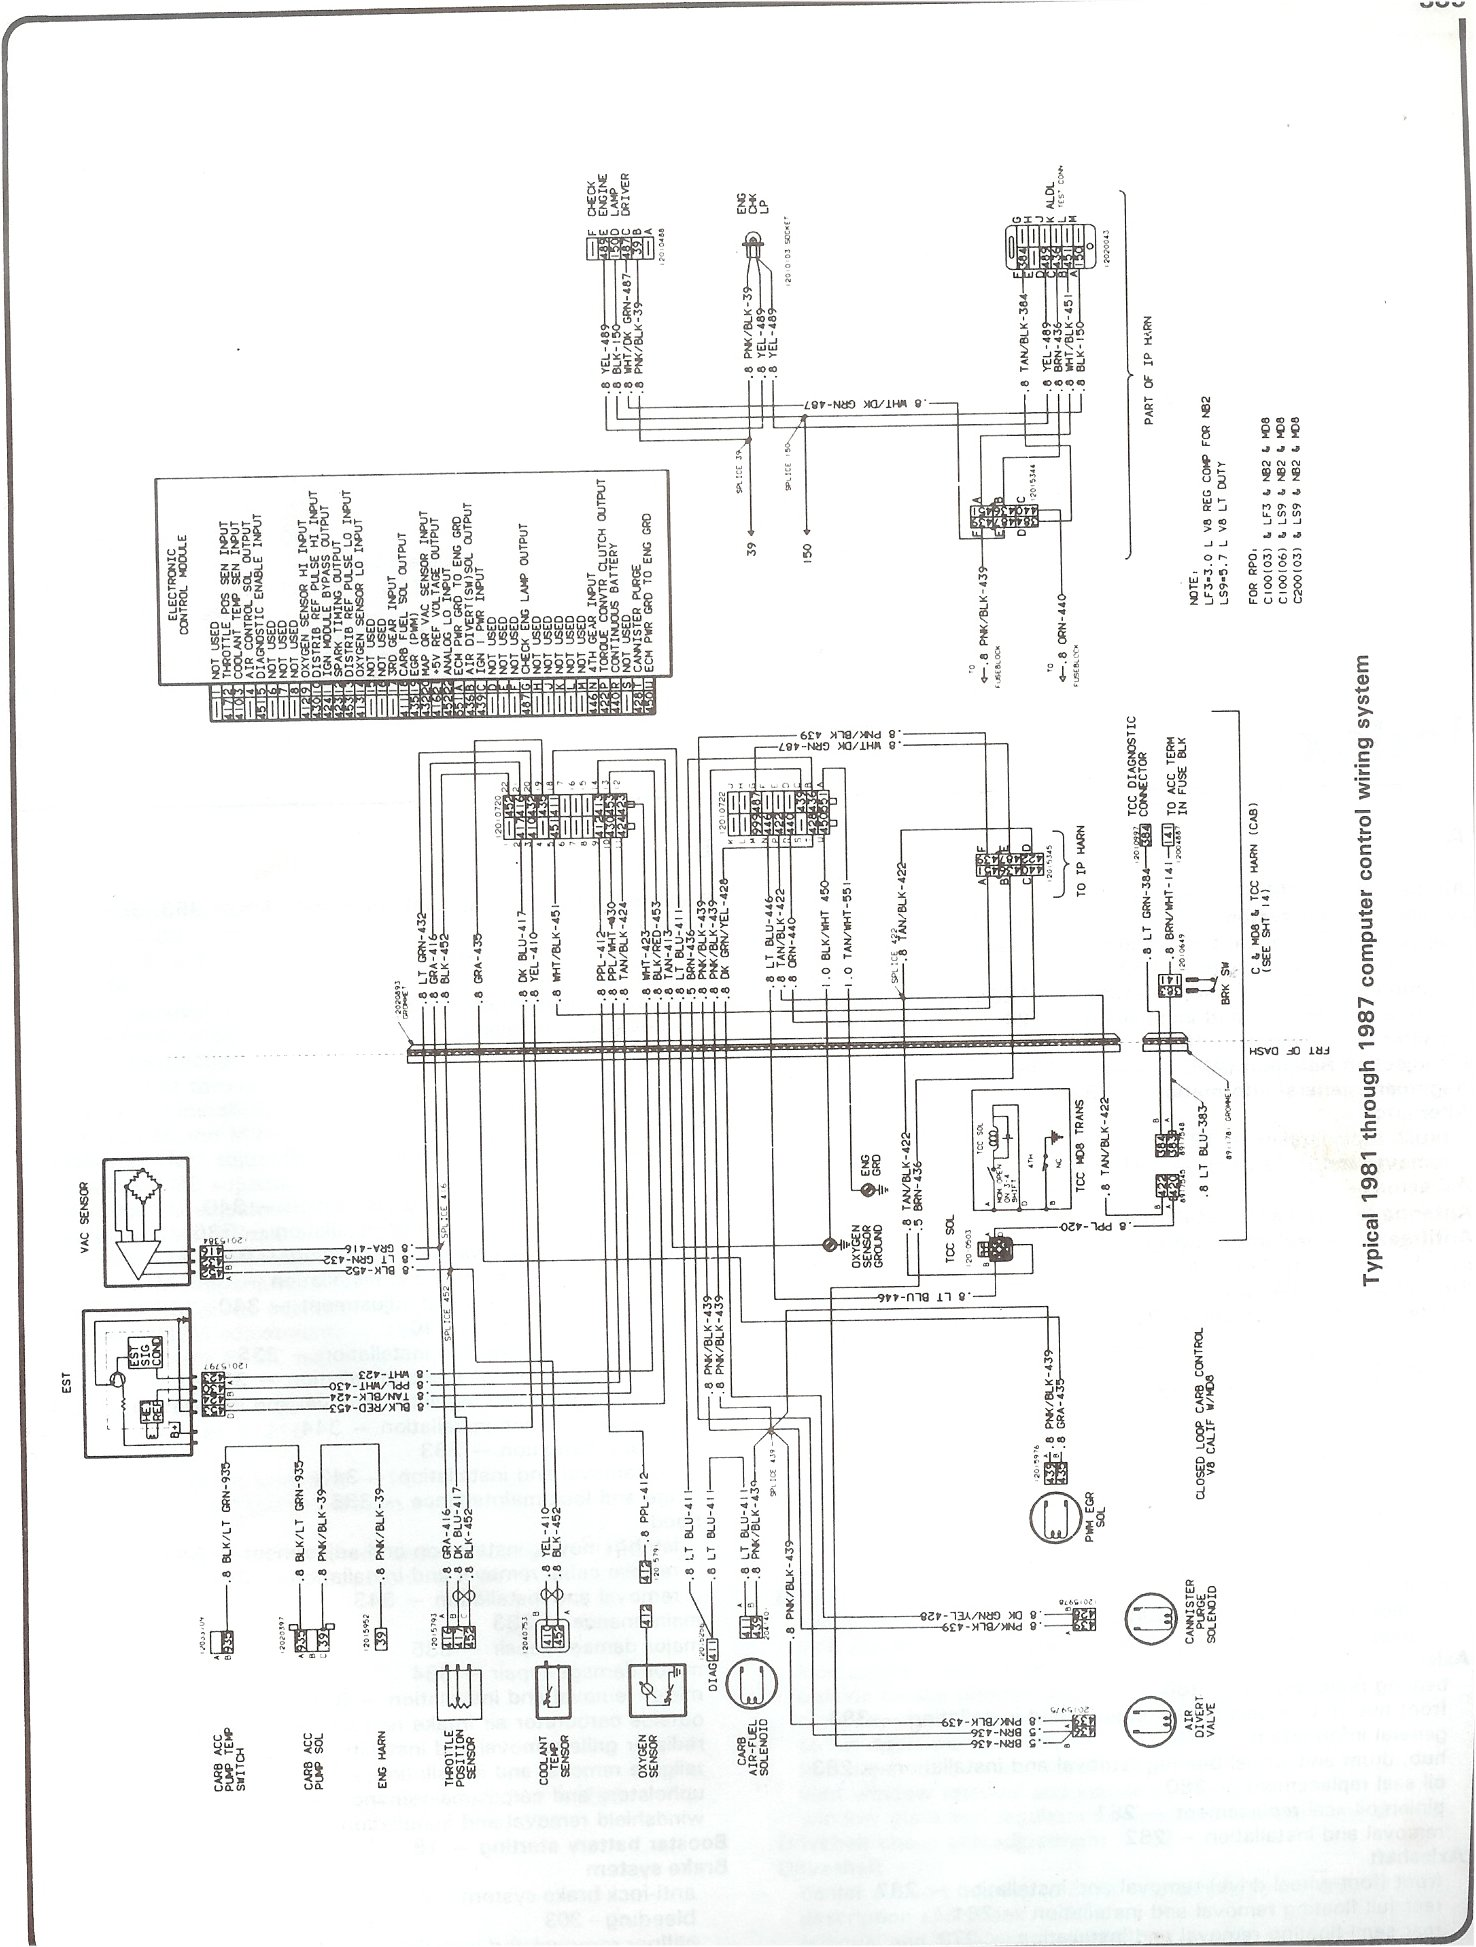 81 87_computer_control_wiring complete 73 87 wiring diagrams 1968 Chevy C10 Wiring-Diagram at mifinder.co